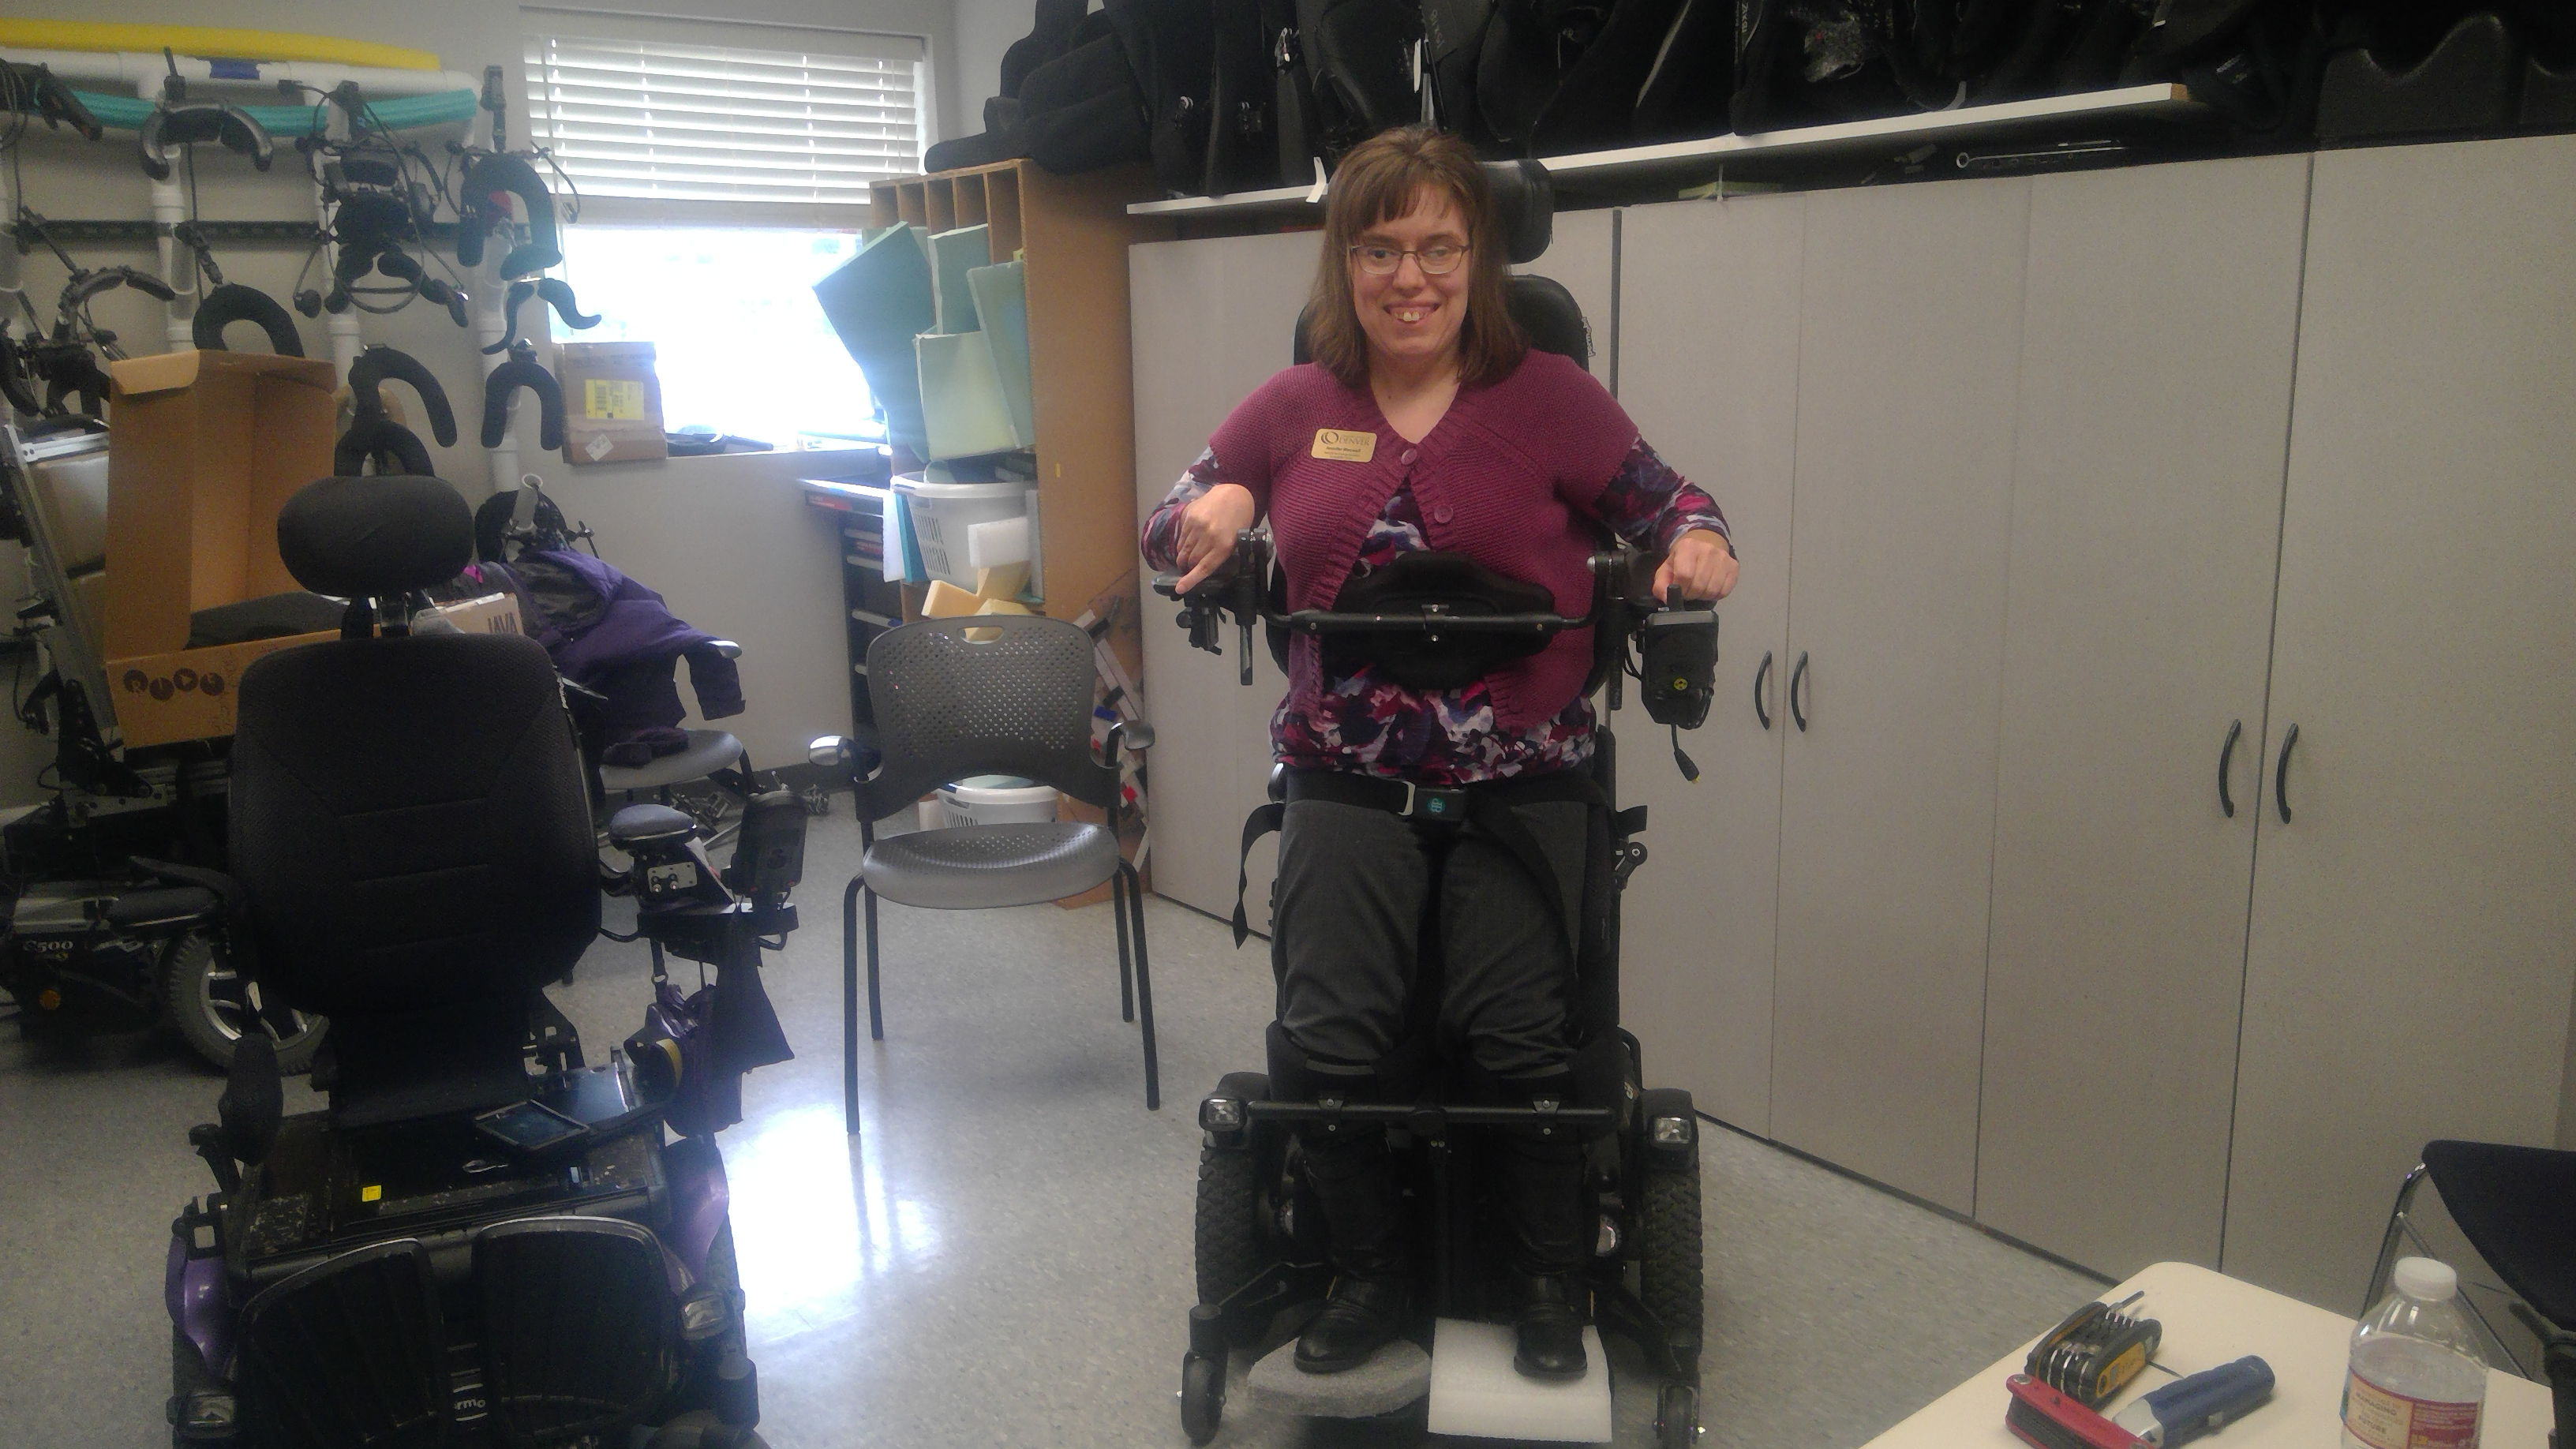 A woman trials a standing power chair